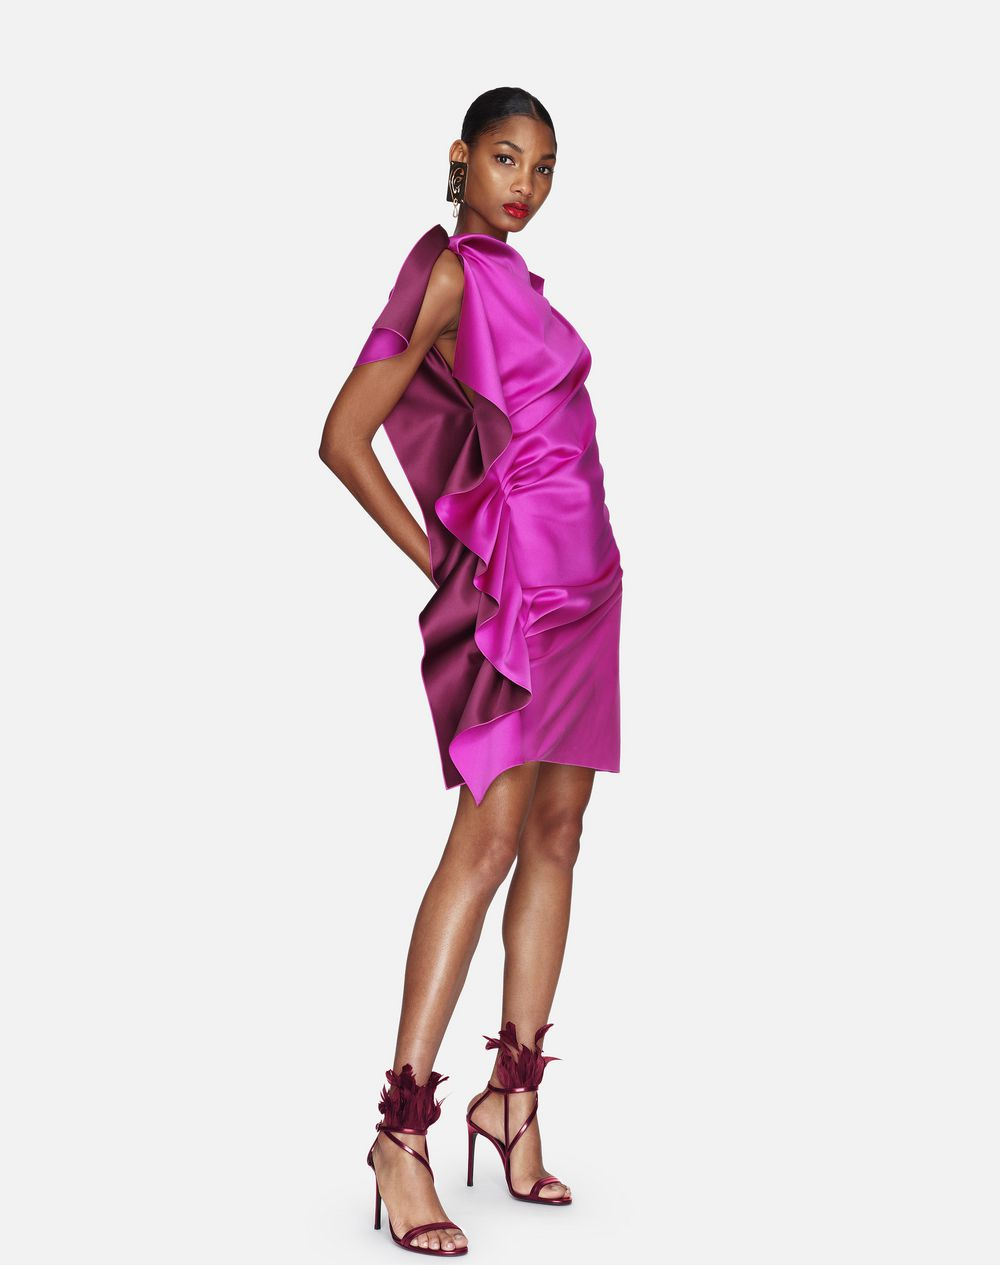 TWO-TONED HOT PINK DRESS - Lanvin